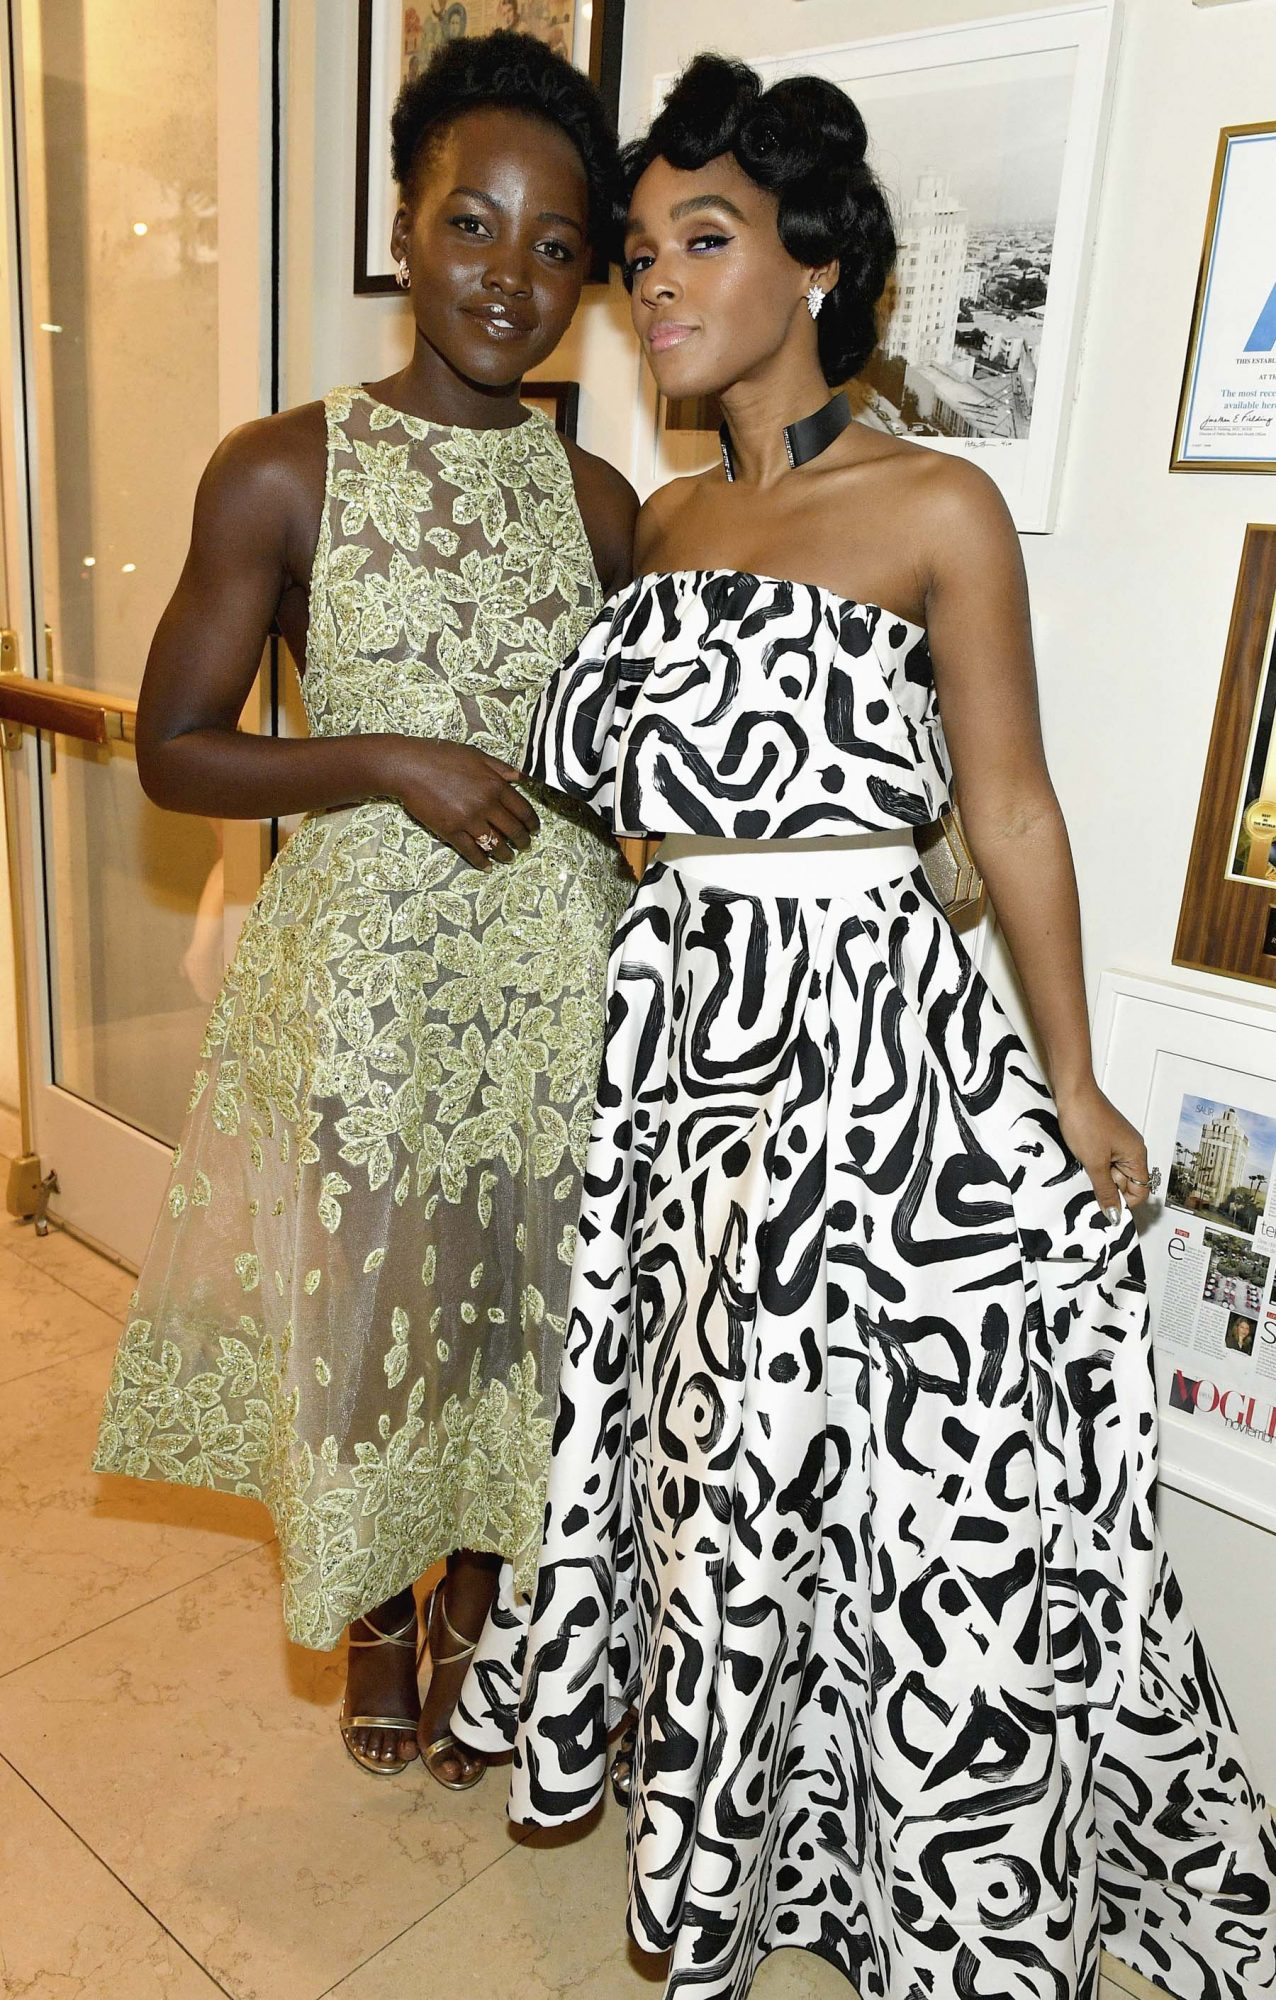 LOS ANGELES, CA - NOVEMBER 12: Actresses Lupita Nyong'o (L) and Janelle Monae attend a special event hosted by Paramount Pictures' Brad Grey with stars from the studio?s films on Saturday, November 12th at the Tower Bar in Los Angeles. (Photo by Mike Windle/Getty Images for Paramount Pictures)